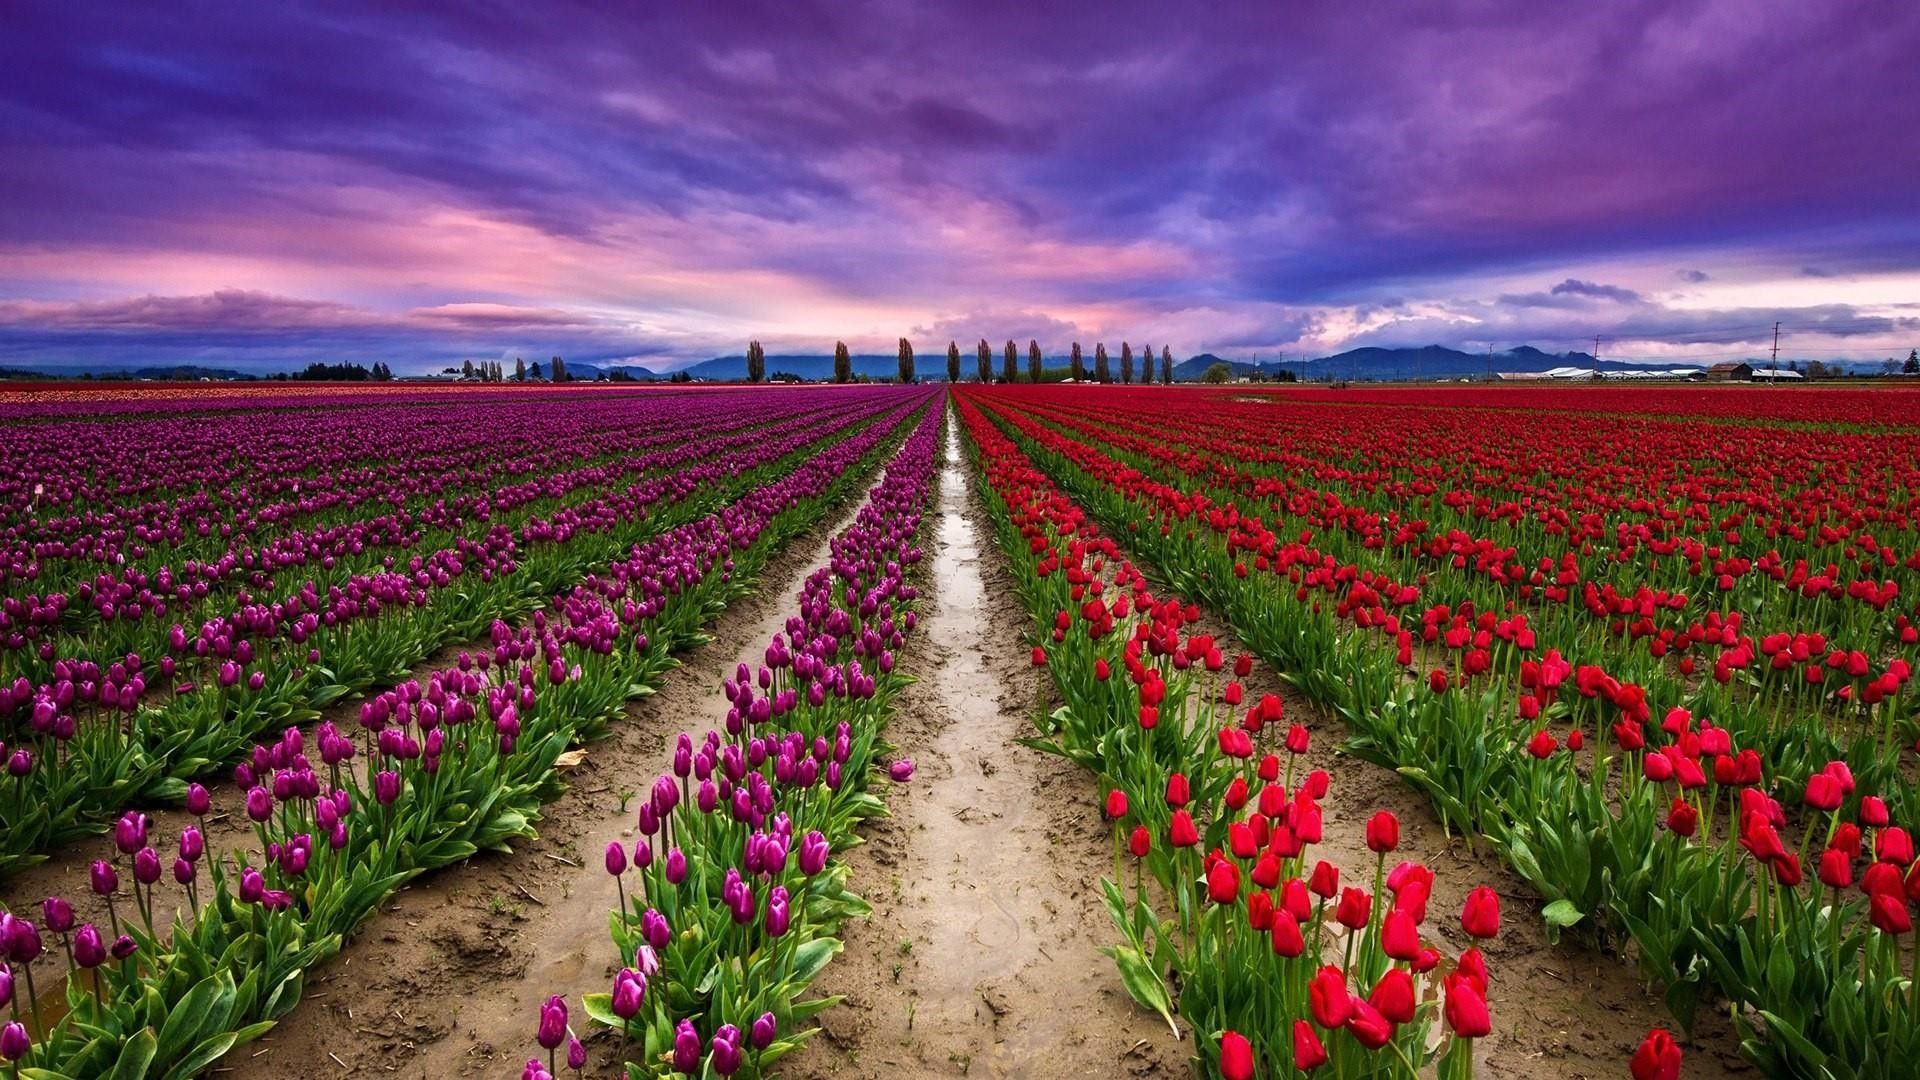 Res: 1920x1080, Keukenhof Tulip Farm Wallpaper | Wallpaper Studio 10 | Tens of thousands HD  and UltraHD wallpapers for Android, Windows and Xbox